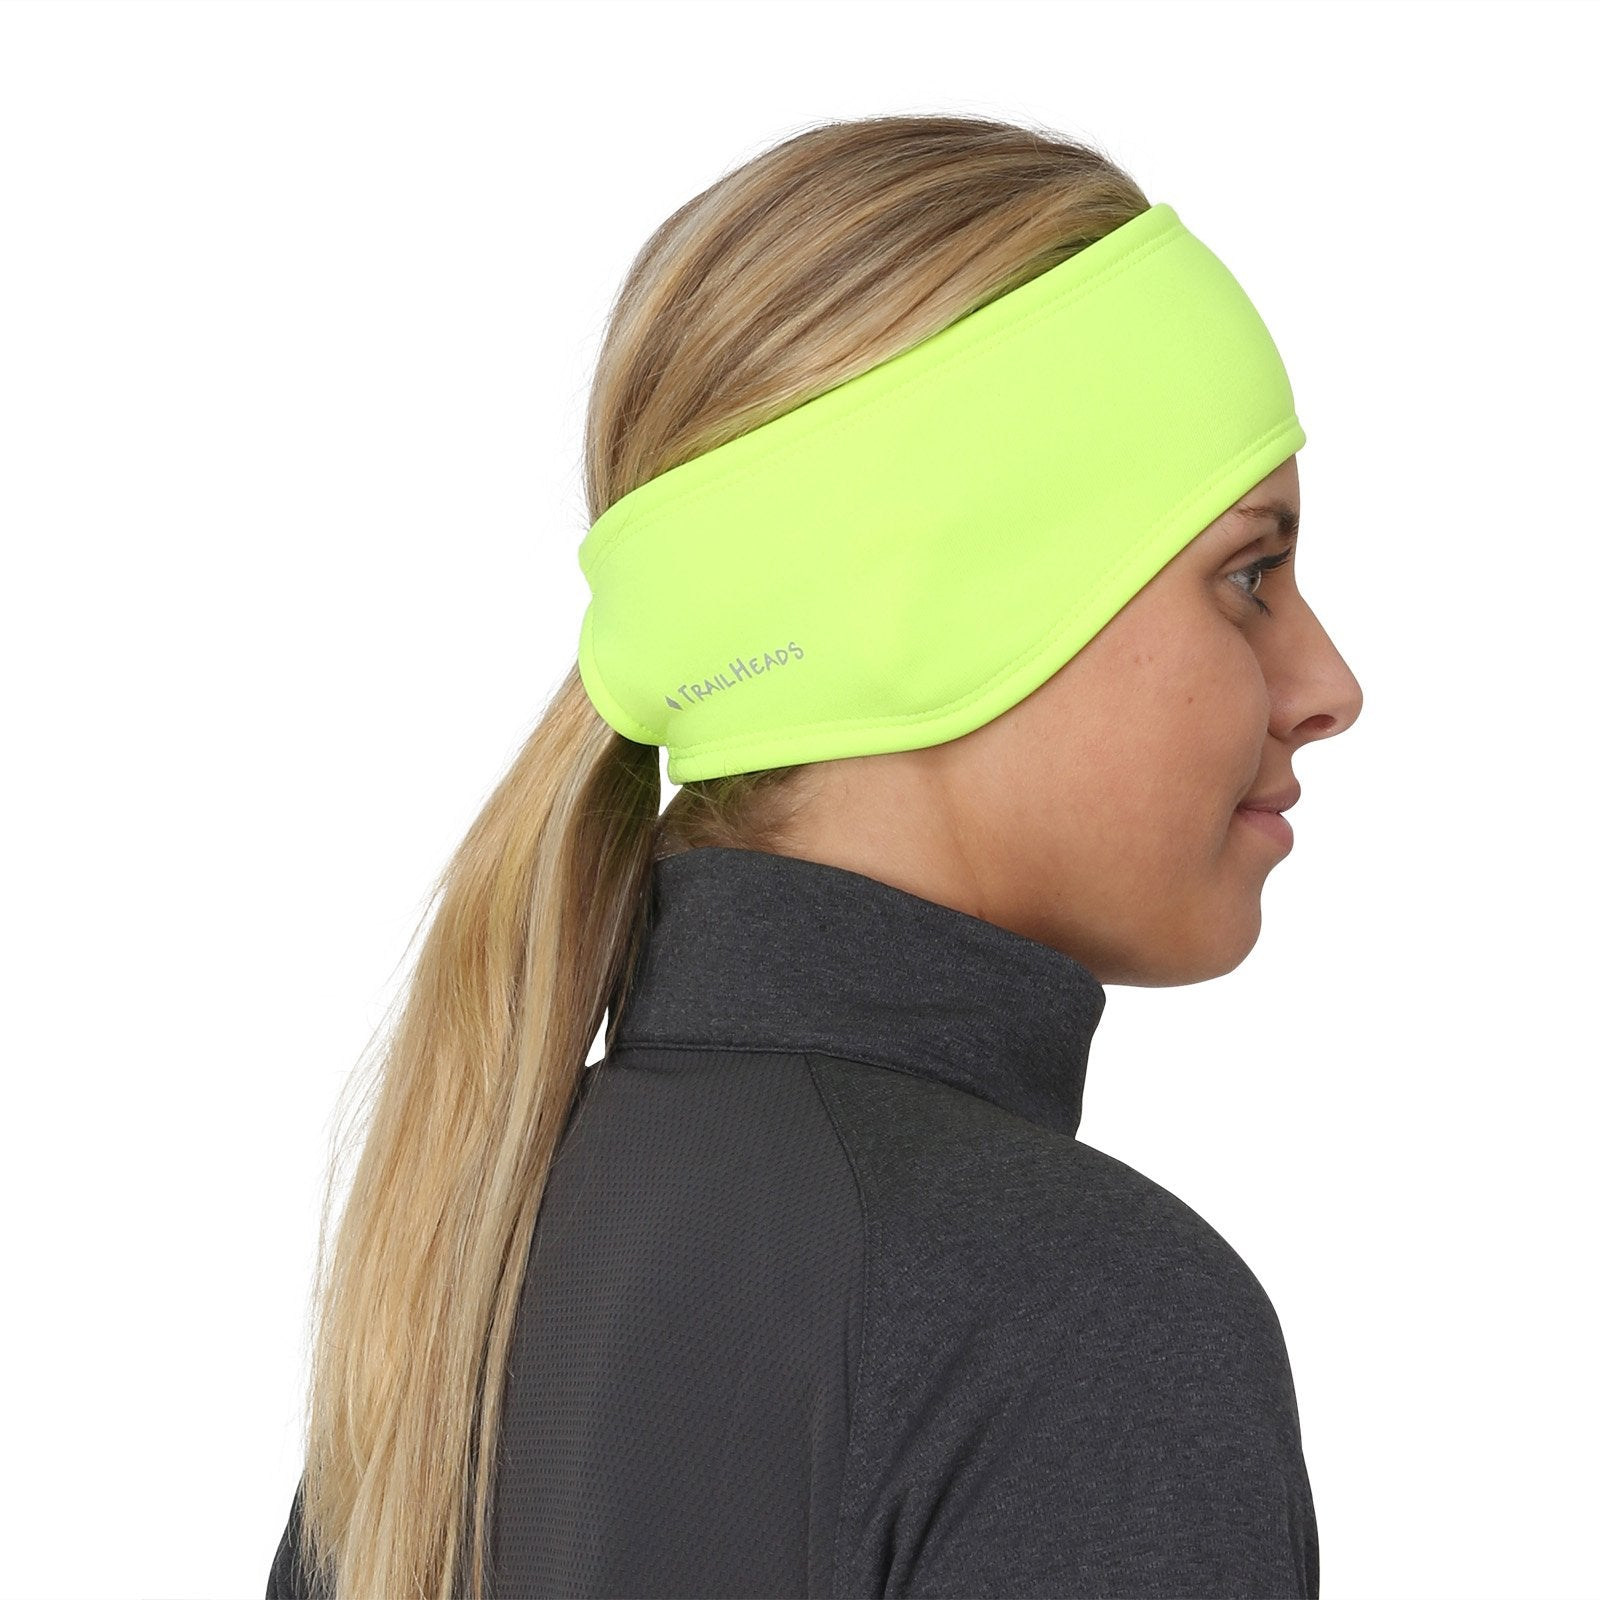 TrailHeads Women's Ponytail Headband | Moisture Wicking Ear Band | The Power Running Headband - hi-vis - Ctfitnesswear